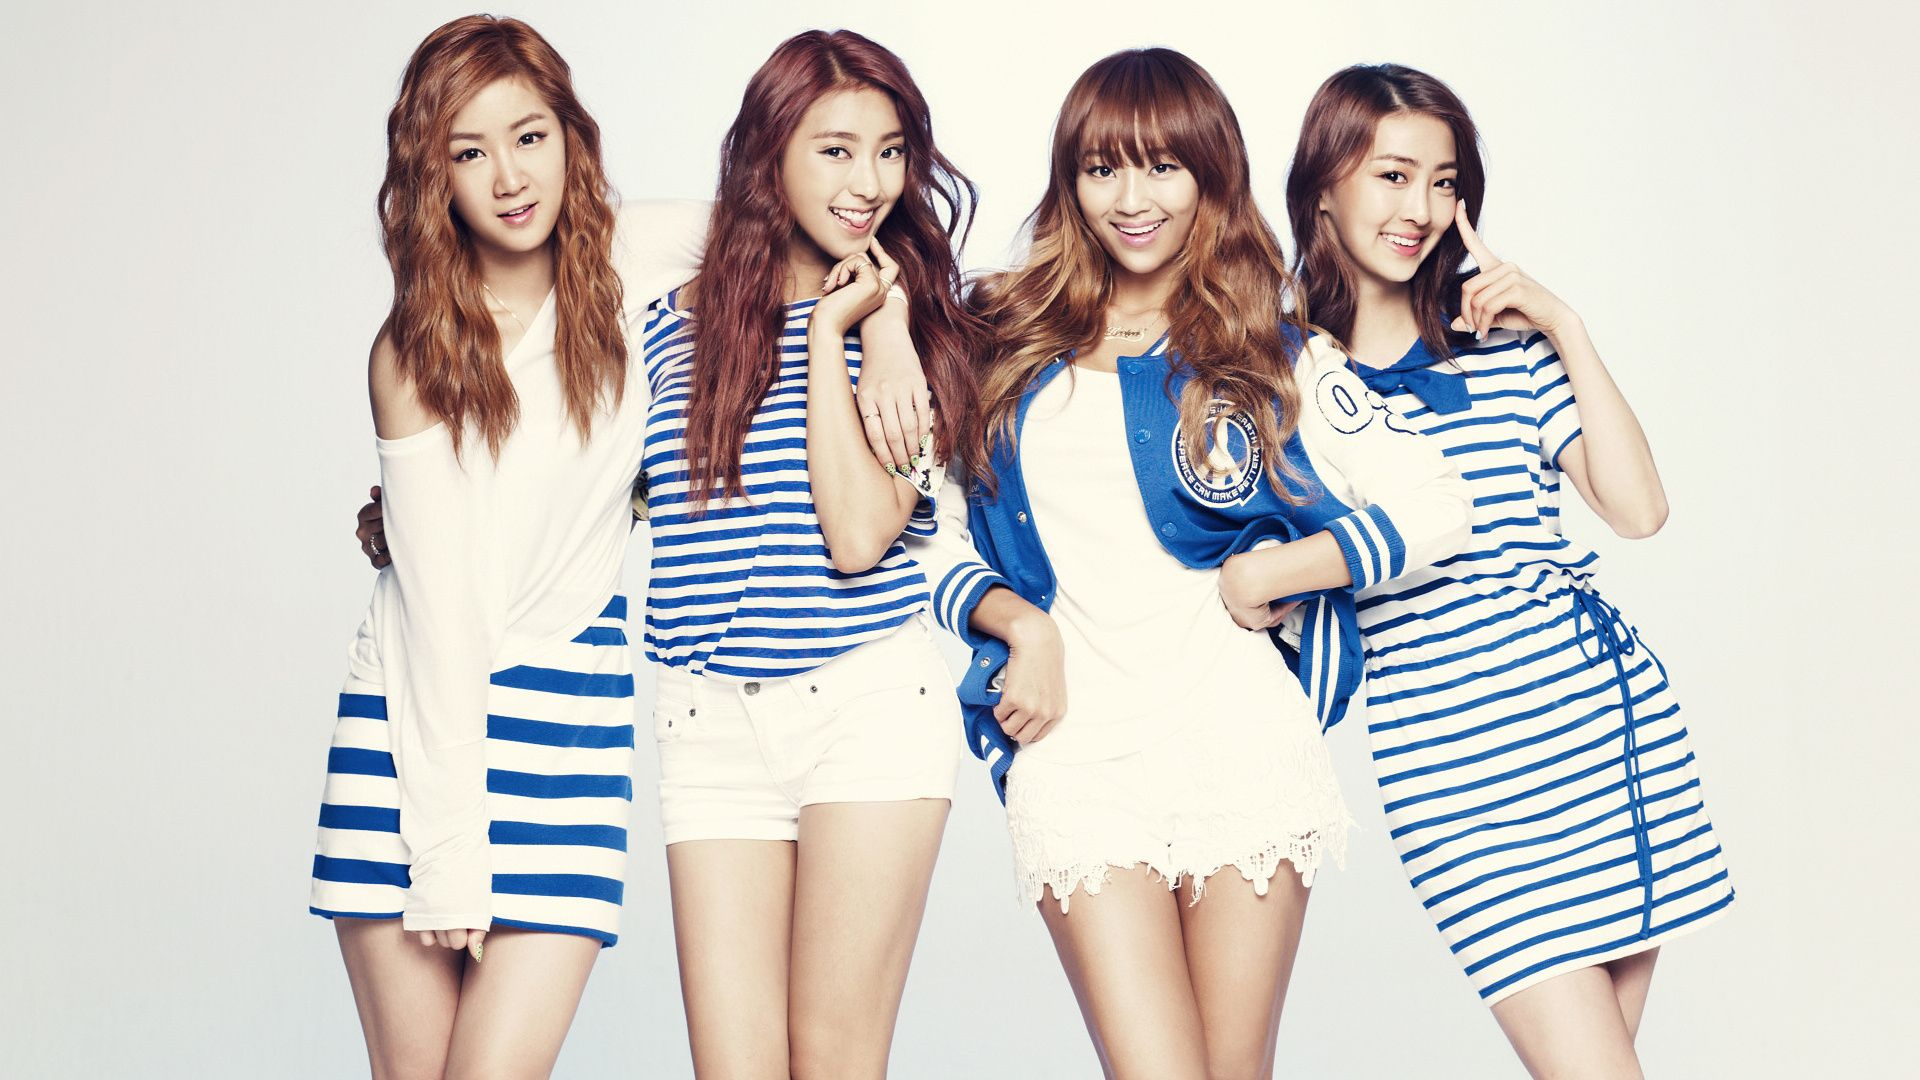 Sistar Is A South Korean Girl Group Formed In 2010 Under The Management Of Starship Entertainment The Group Consists Of Hyolyn Kpop Girls Sistar Sistar Kpop